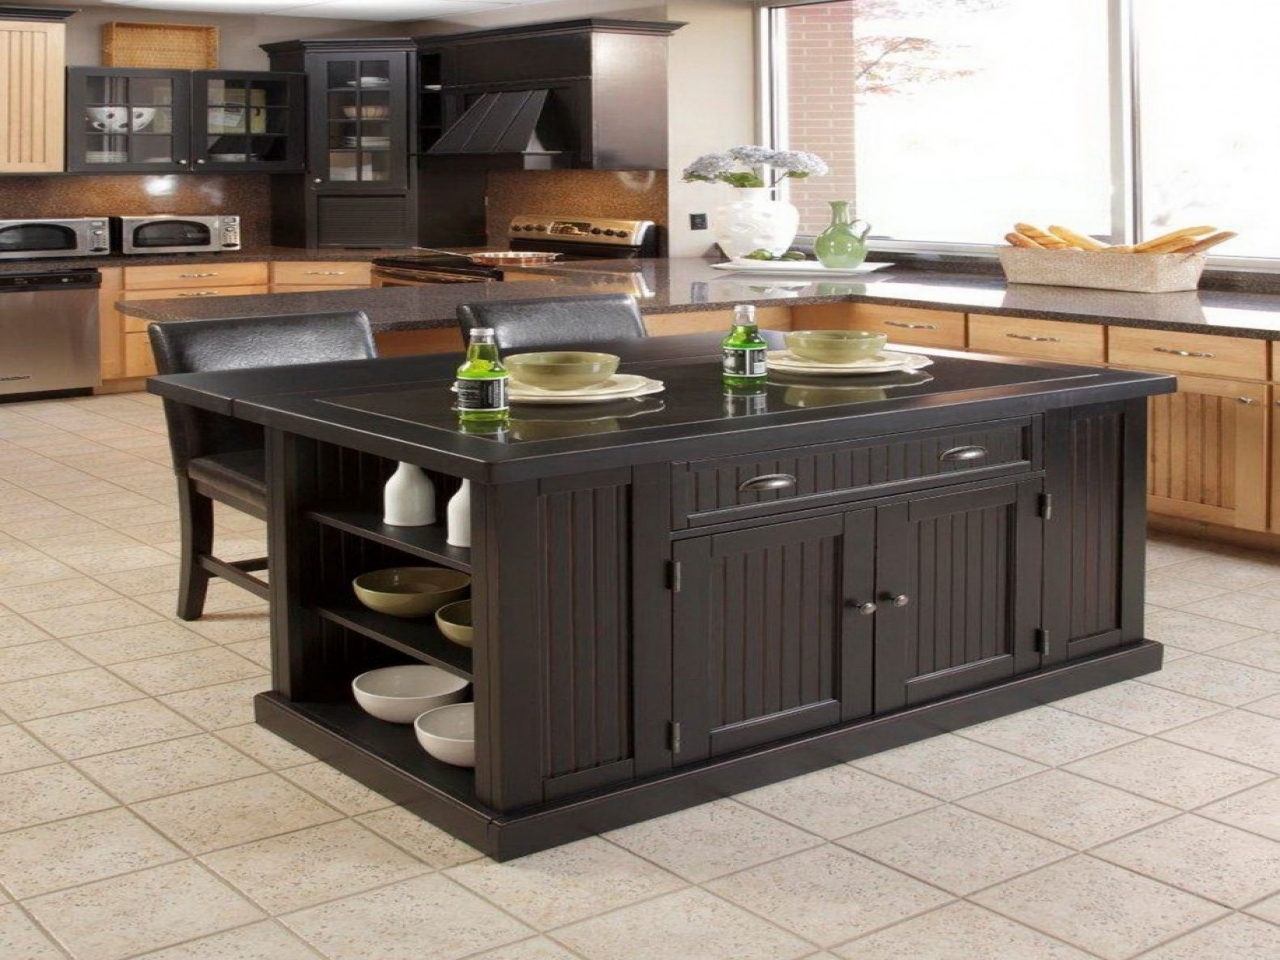 granite kitchen island designs photo - 8